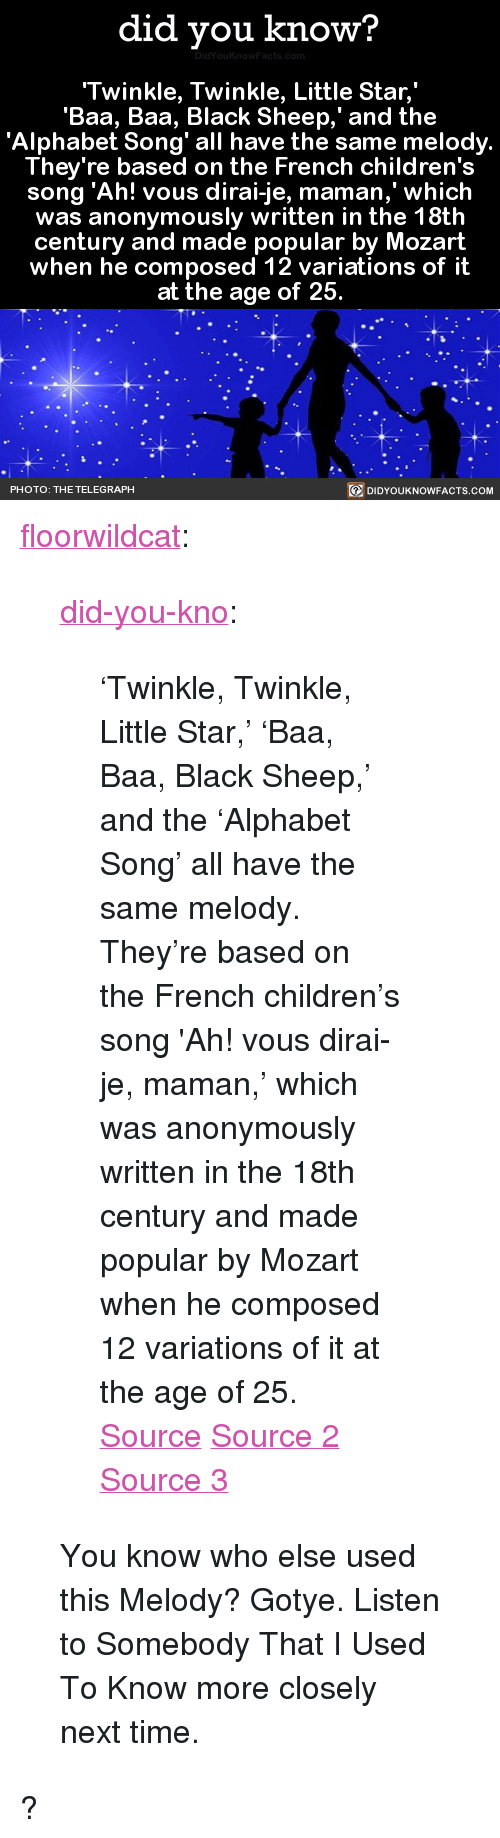 """Children's song: did you know?  Twinkle, Twinkle, Little Star,  'Baa, Baa, Black Sheep,' and the  'Alphabet Song' all have the same melody.  They're based on the French children's  song 'Ah! vous dirai-je, maman,' which  was anonymously written in the 18th  century and made popular by Mozart  when he composed 12 variations of it  at the age of 25  BE DIDYOUKNOWFACTS COM  PHOTO: THE TELEGRAPH <p><a href=""""http://floorwildcat.tumblr.com/post/158455959893/twinkle-twinkle-little-star-baa-baa-black"""" class=""""tumblr_blog"""">floorwildcat</a>:</p>  <blockquote><p><a href=""""http://didyouknowblog.com/post/158452262084/twinkle-twinkle-little-star-baa-baa-black"""" class=""""tumblr_blog"""">did-you-kno</a>:</p>  <blockquote><p>'Twinkle, Twinkle, Little Star,' 'Baa, Baa, Black Sheep,' and the &lsquo;Alphabet Song' all have the same melody. They're based on the French children's song 'Ah! vous dirai-je, maman,' which was anonymously written in the 18th century and made popular by Mozart when he composed 12 variations of it at the age of 25.  <a href=""""https://en.wikipedia.org/wiki/Twelve_Variations_on_%22Ah_vous_dirai-je,_Maman%22"""">Source</a> <a href=""""https://en.wikipedia.org/wiki/Twinkle,_Twinkle,_Little_Star"""">Source 2</a> <a href=""""https://en.wikipedia.org/wiki/Baa,_Baa,_Black_Sheep#Melody"""">Source 3</a></p></blockquote>  <p>You know who else used this Melody? Gotye. Listen to Somebody That I Used To Know more closely next time.</p></blockquote>  <p>?</p>"""